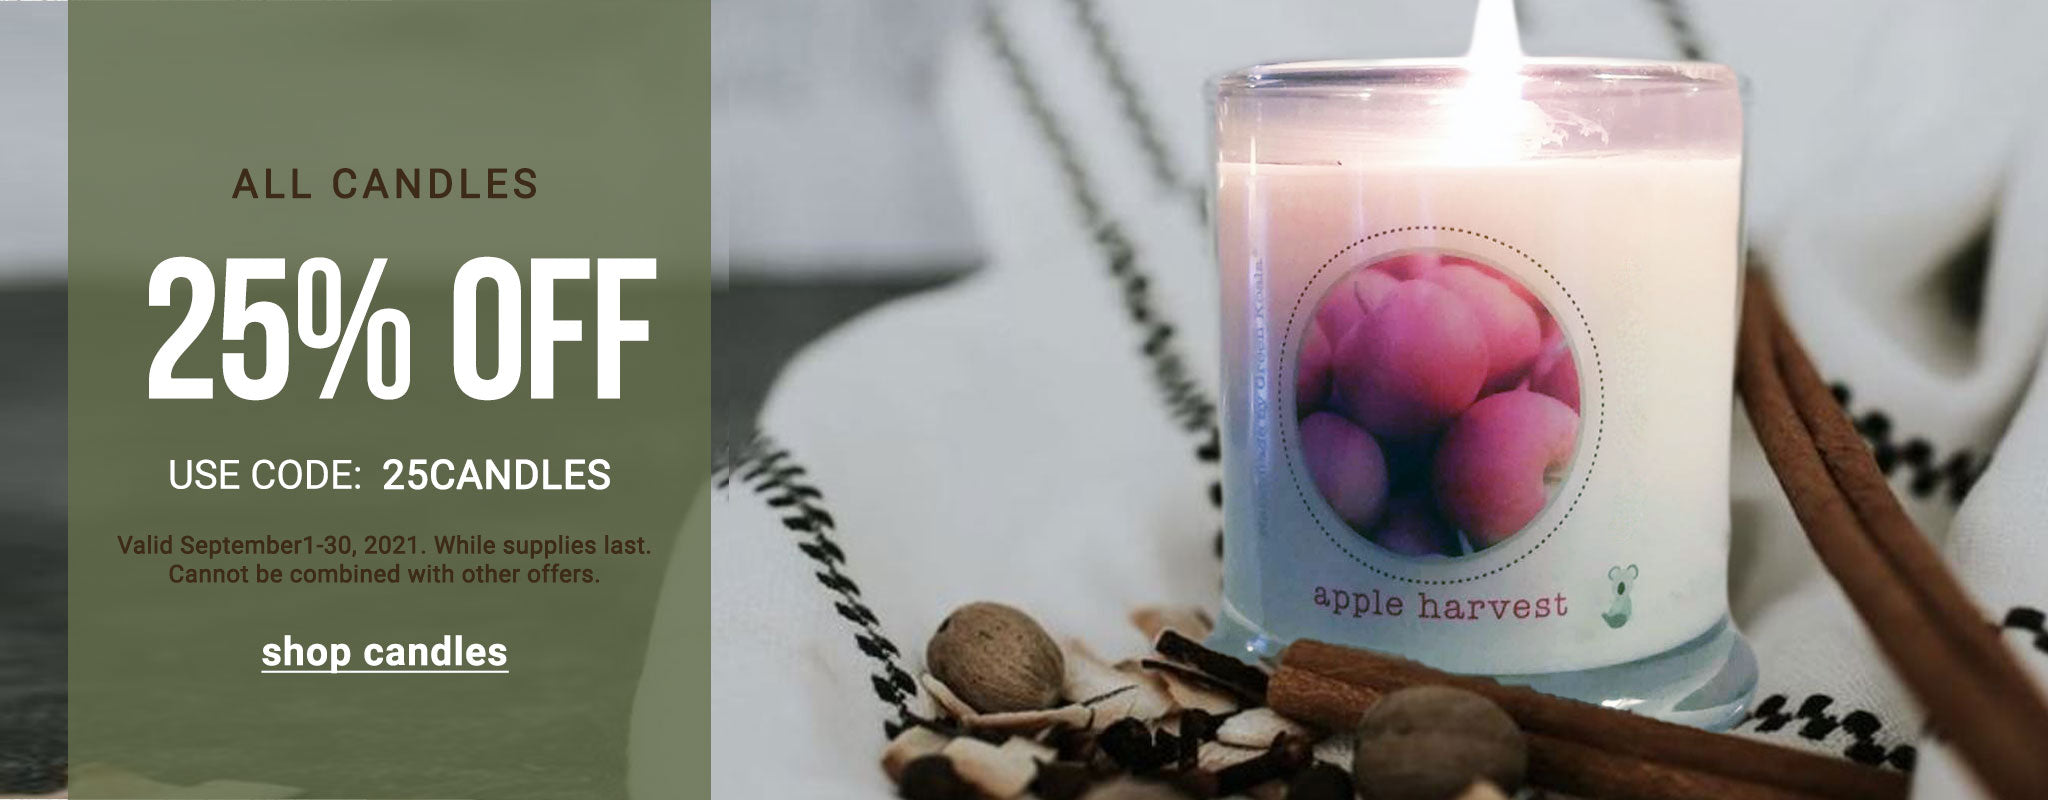 25% off all candles. Valid September 1-30, 2021. Use Code: 25CANDLES.